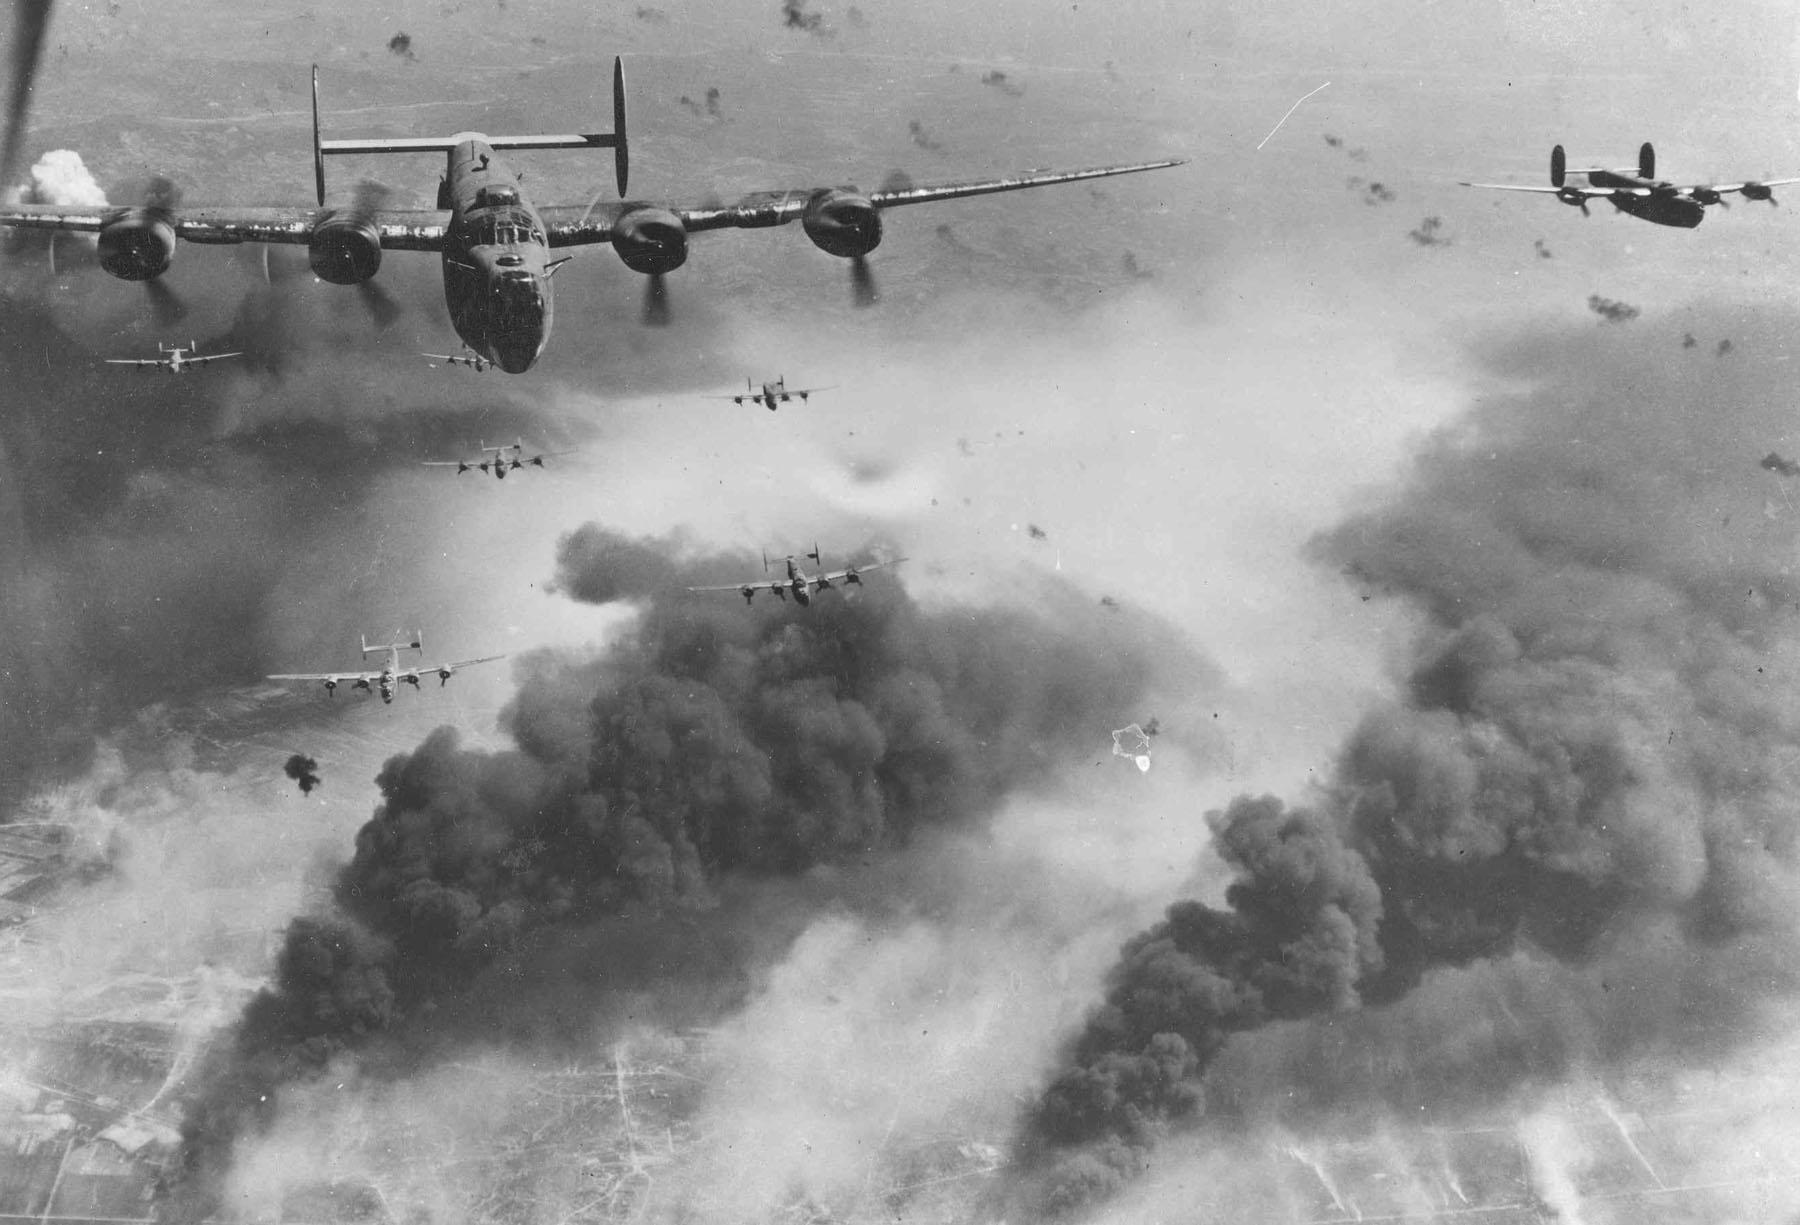 German Radio Reconnaissance Service has intercepted American flight plans, & prepared air defences around Romanian oil fields. Long flight has left overburdened bombers short of fuel & strung out, easy prey for Luftwaffe anti-aircraft guns. https://t.co/fZJrnhikIj